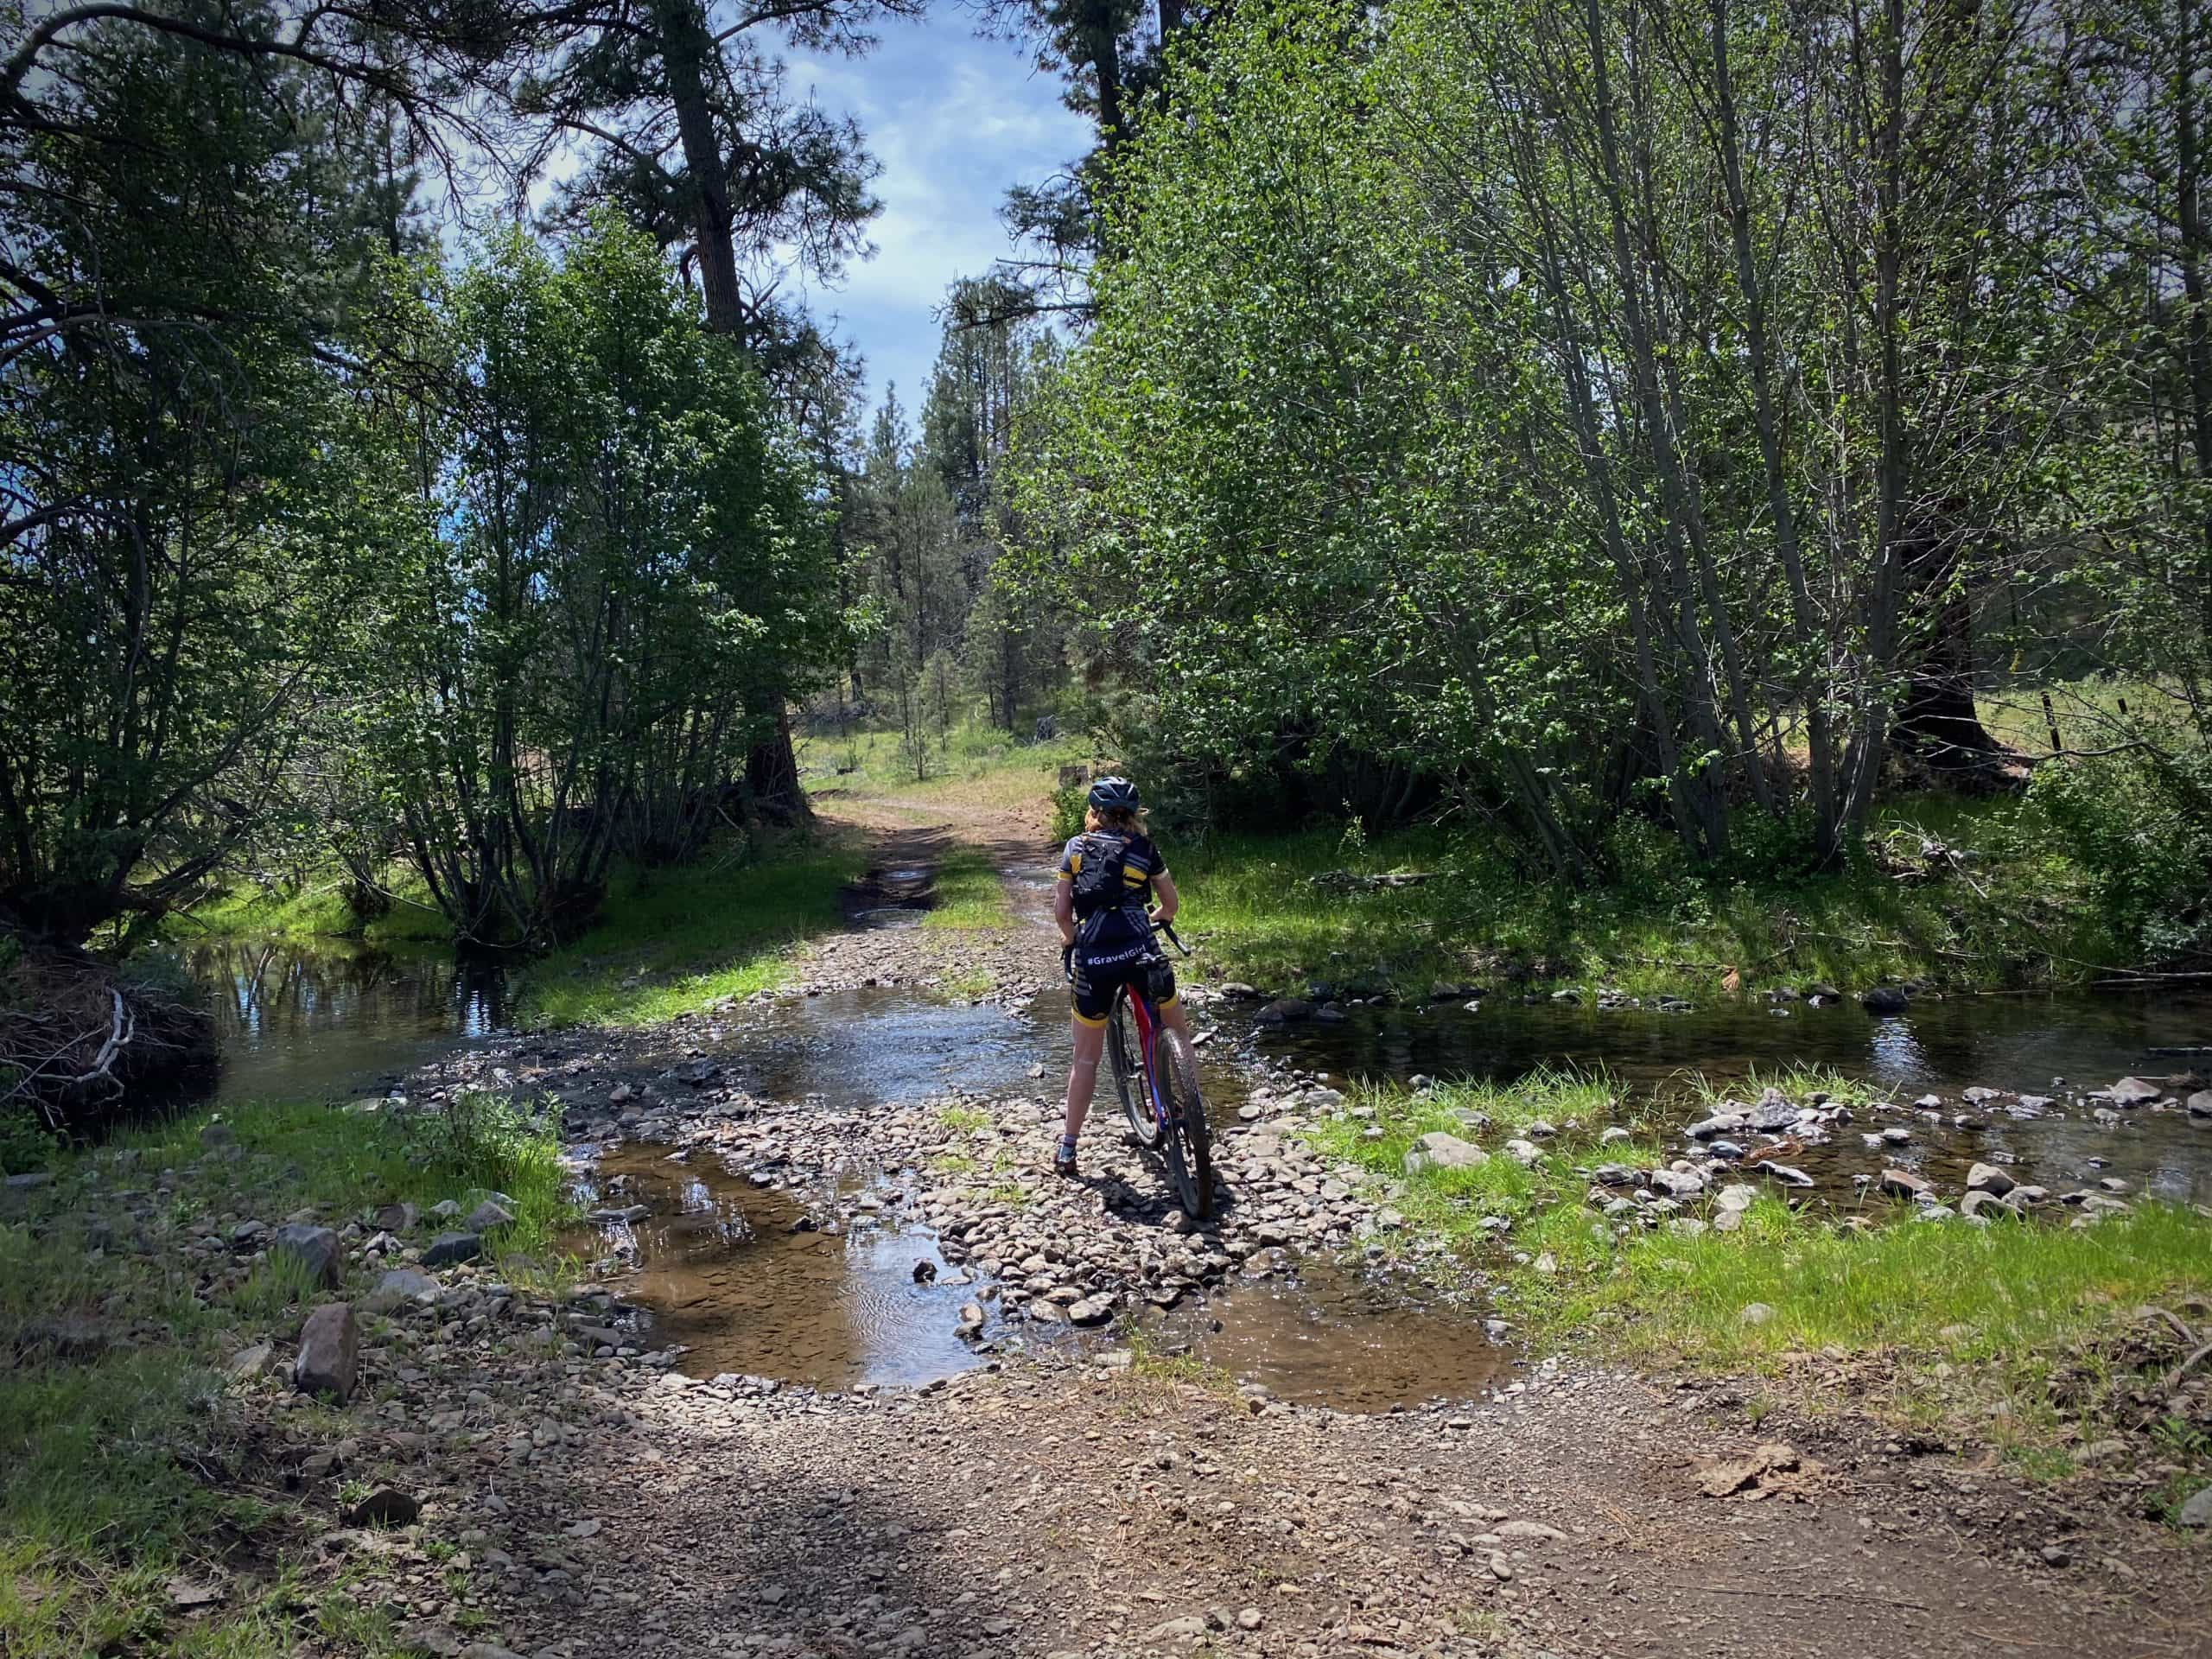 Gravel Girl crossing a stream on a primitive dirt road in the Ochoco National forest.